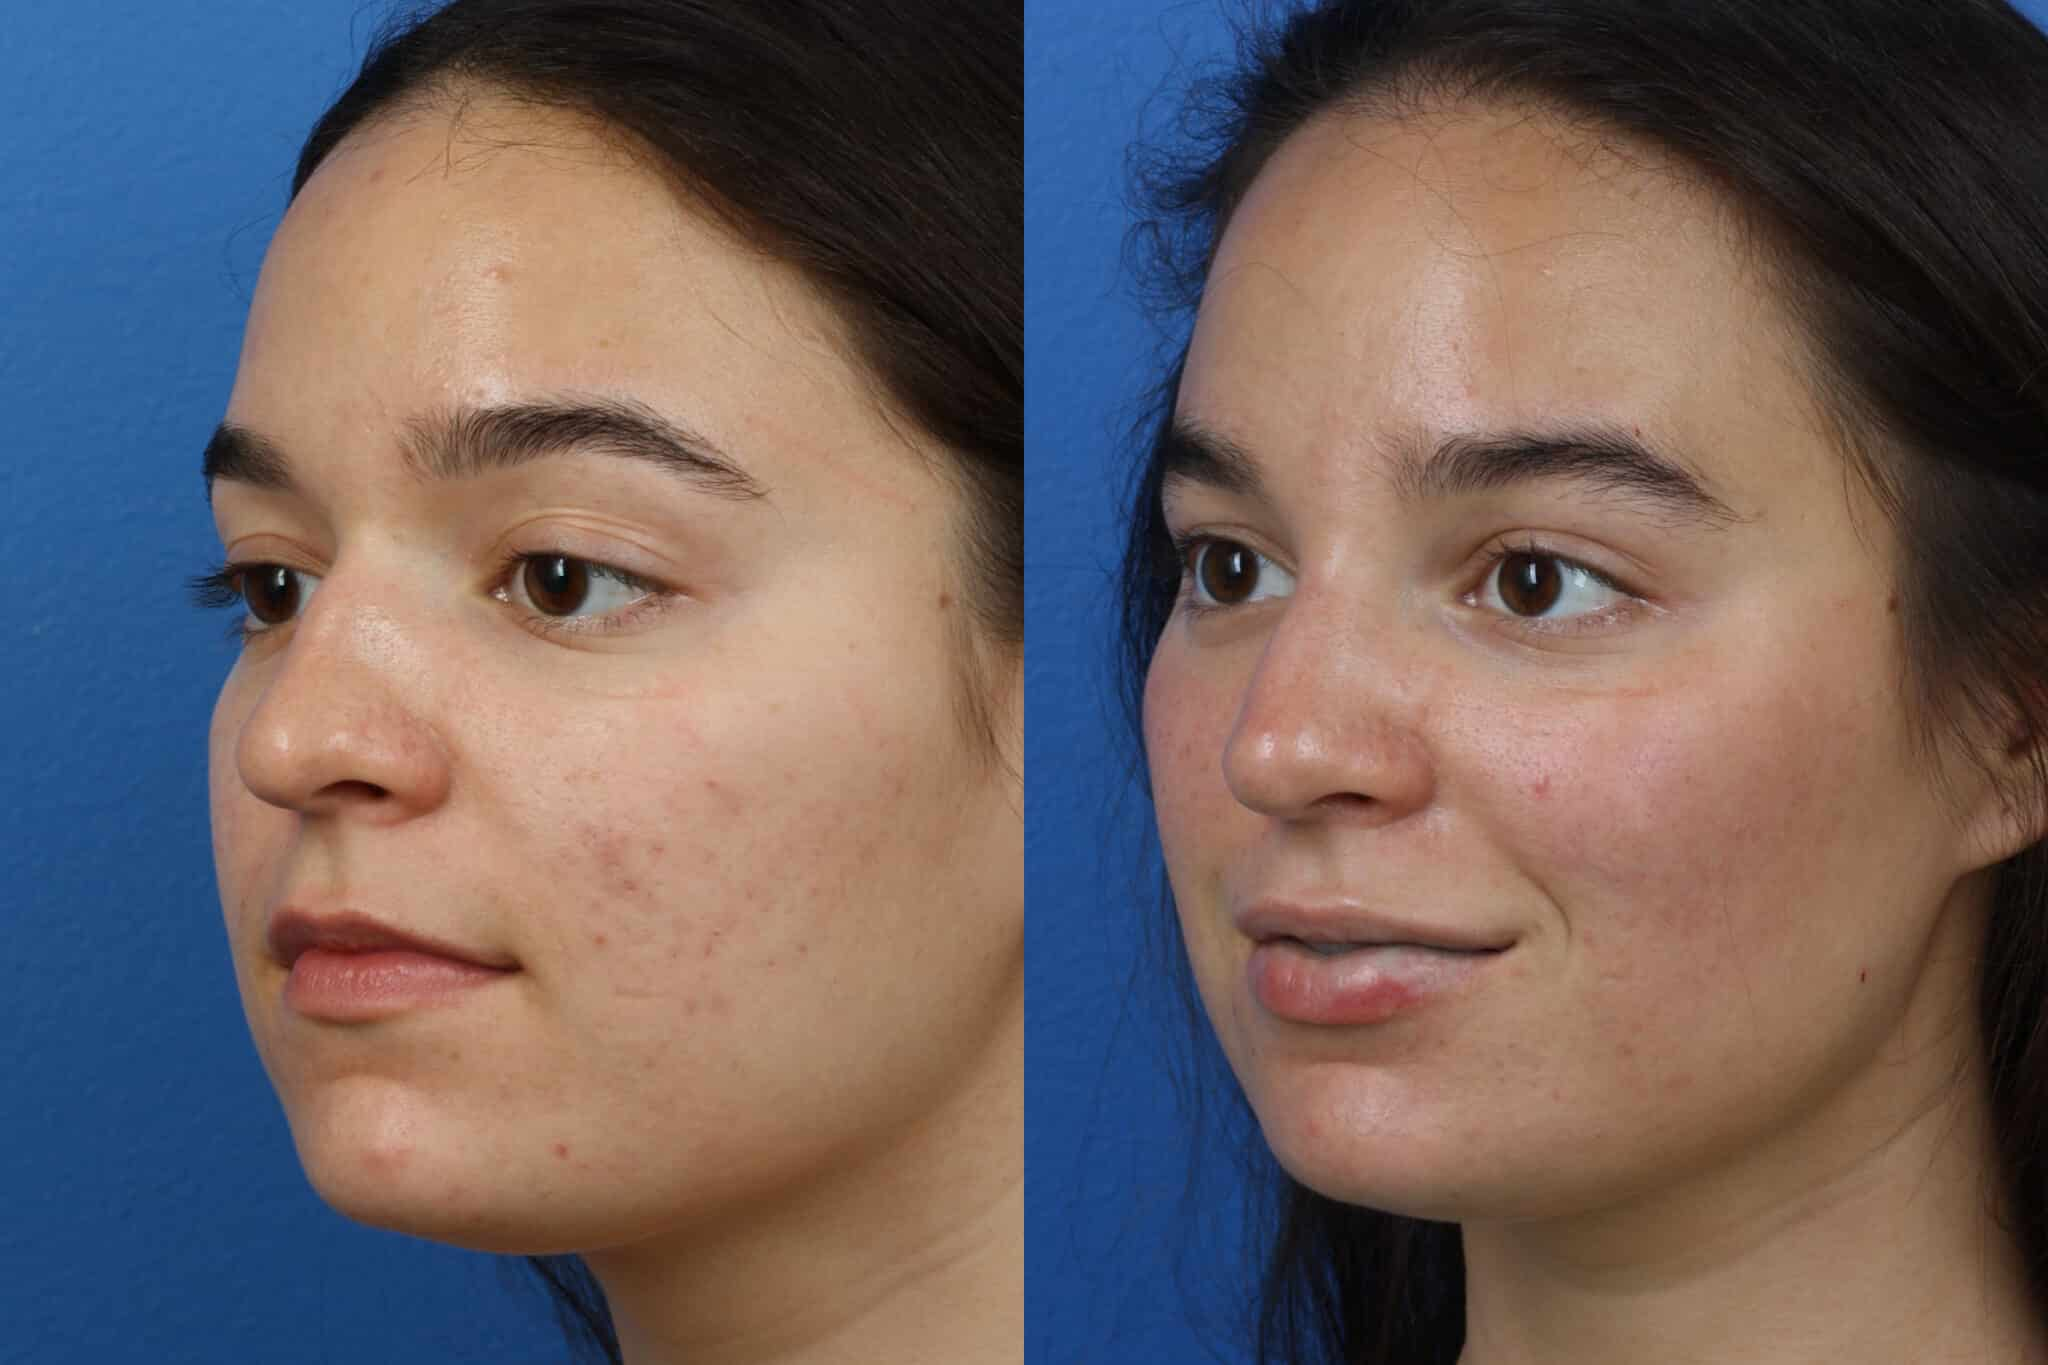 Rhinoplasty to Refine Nasal Bridge and Tip by Dr. Miller